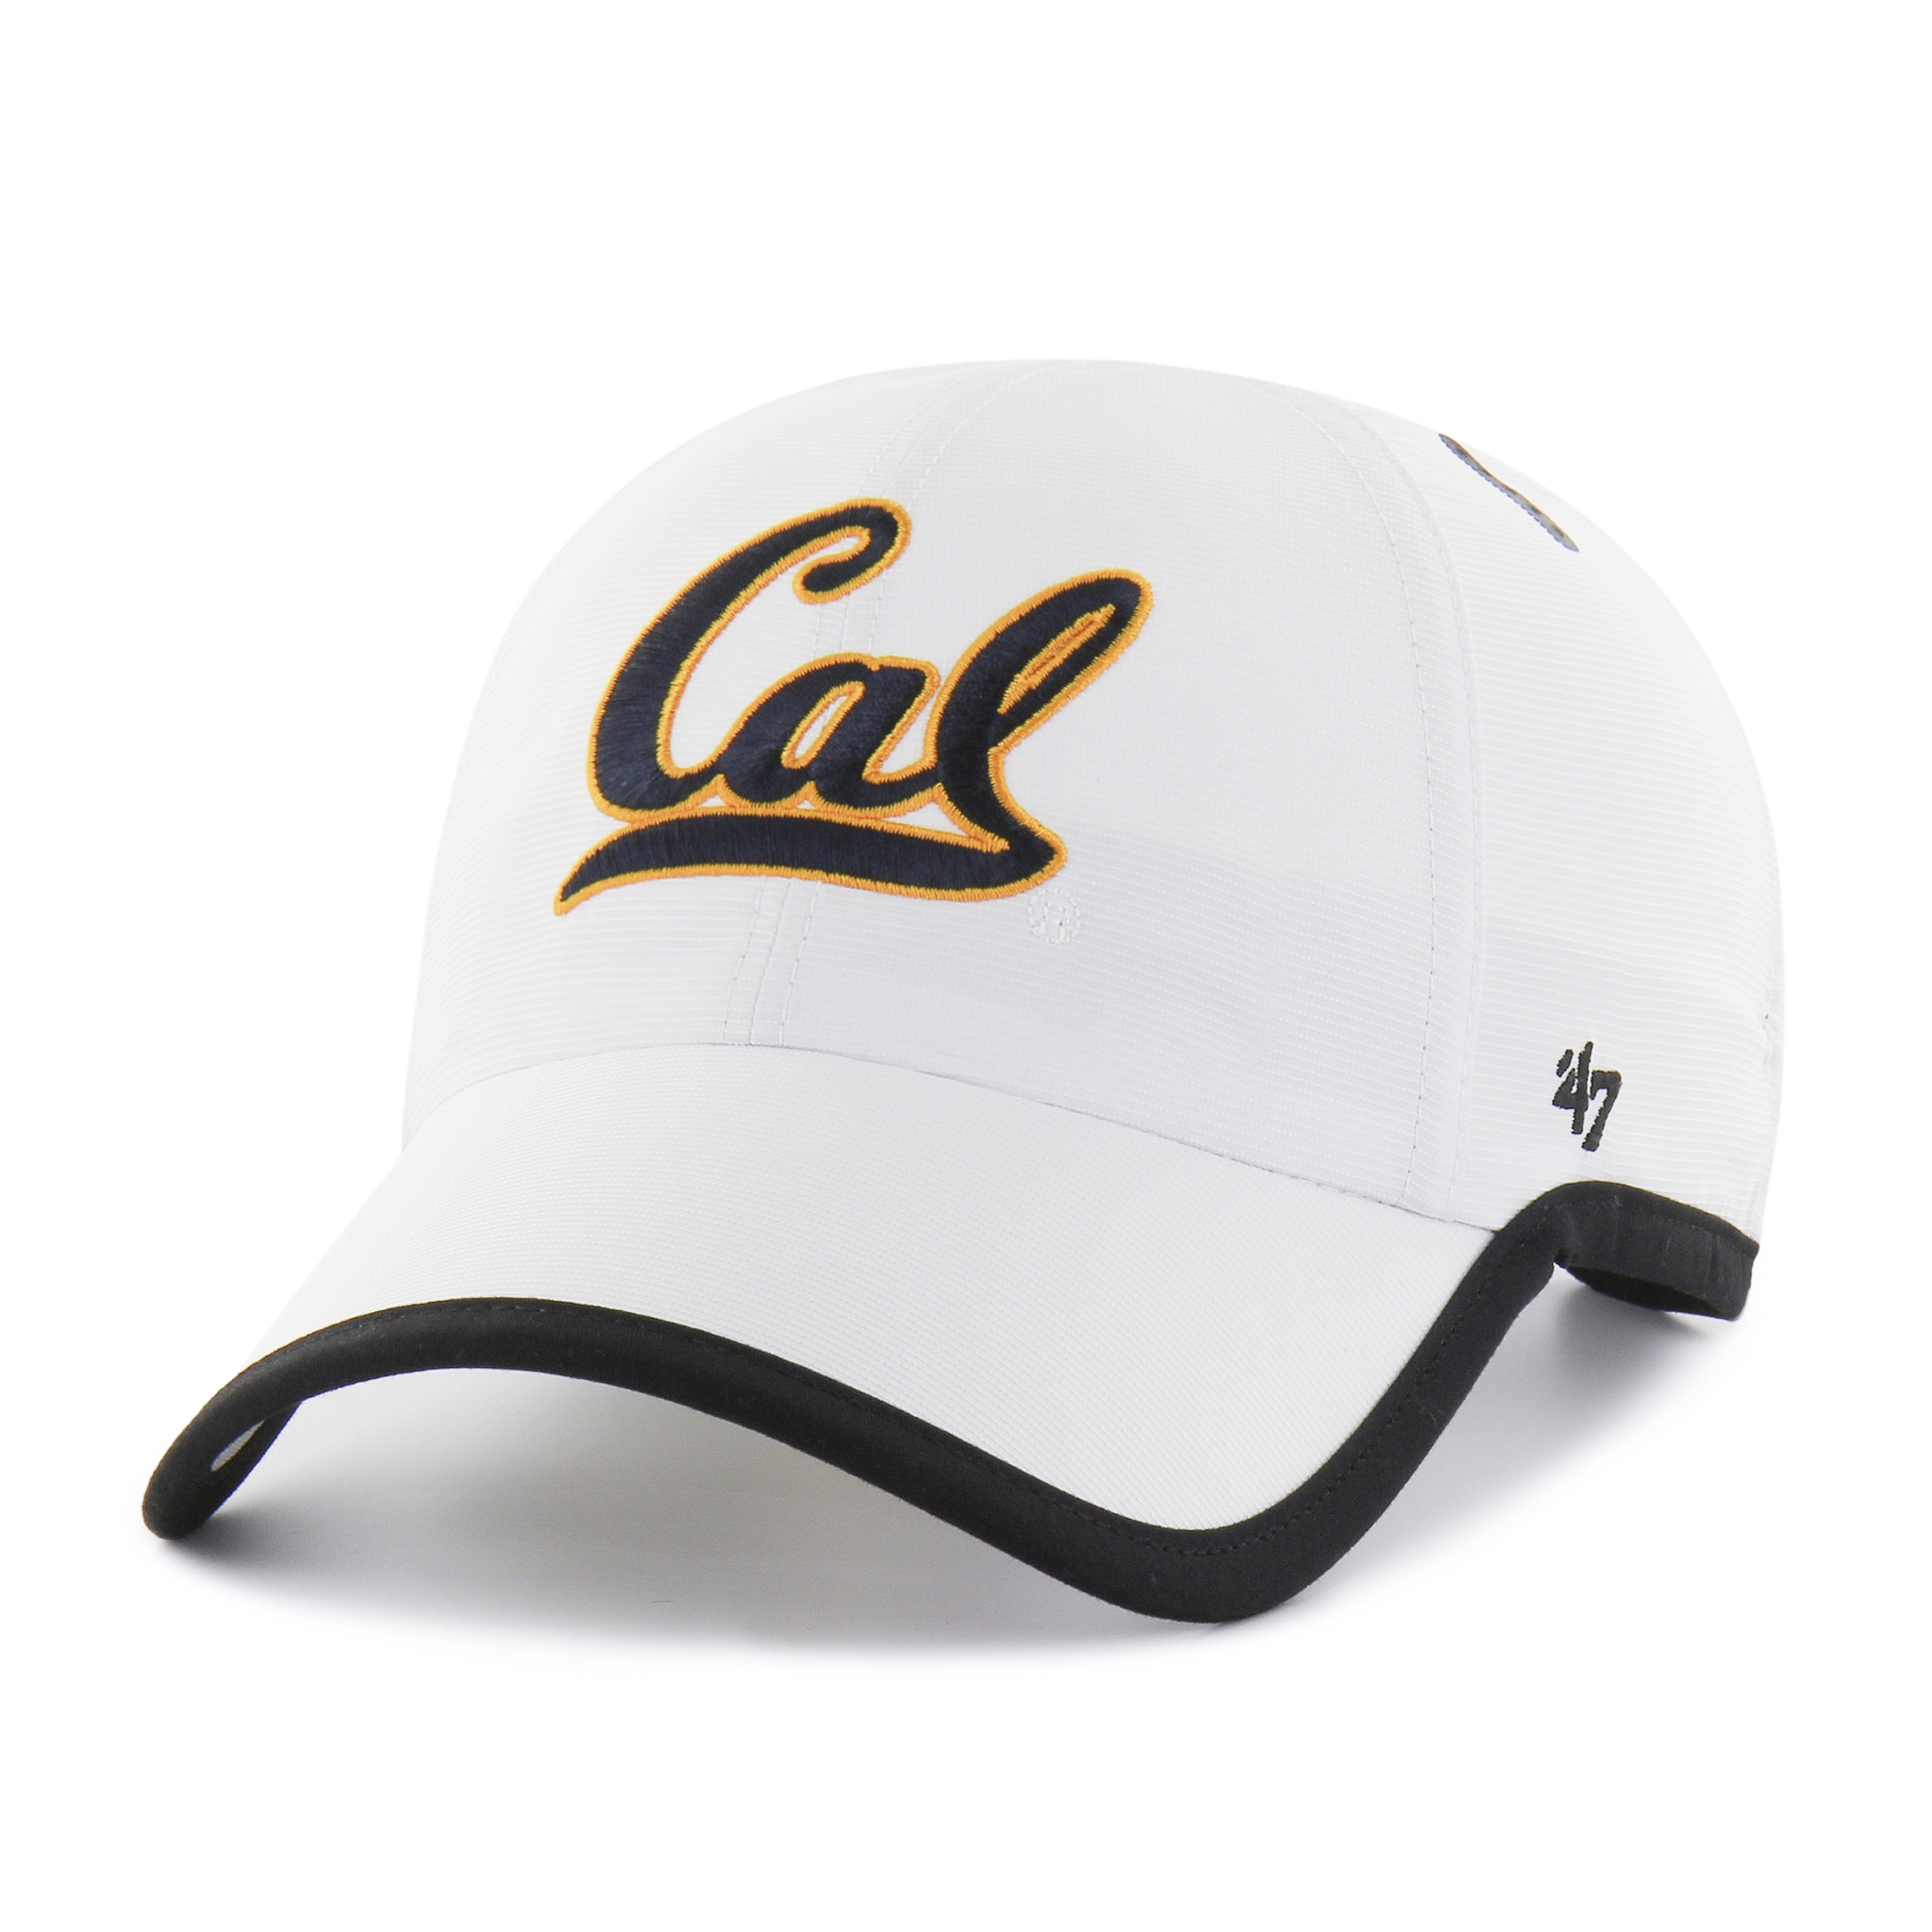 Cal Bears '47 Compete Cleanup Adjustable Hat